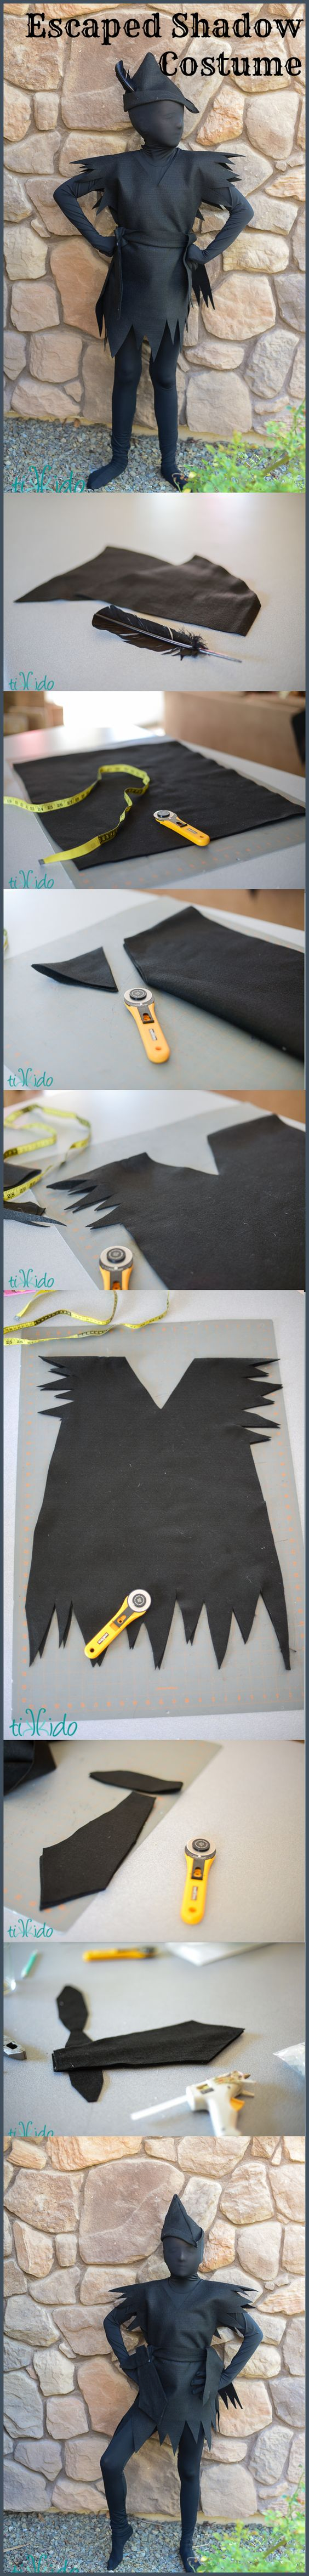 DIY Peter Pan's Escaped Shadow Costume.